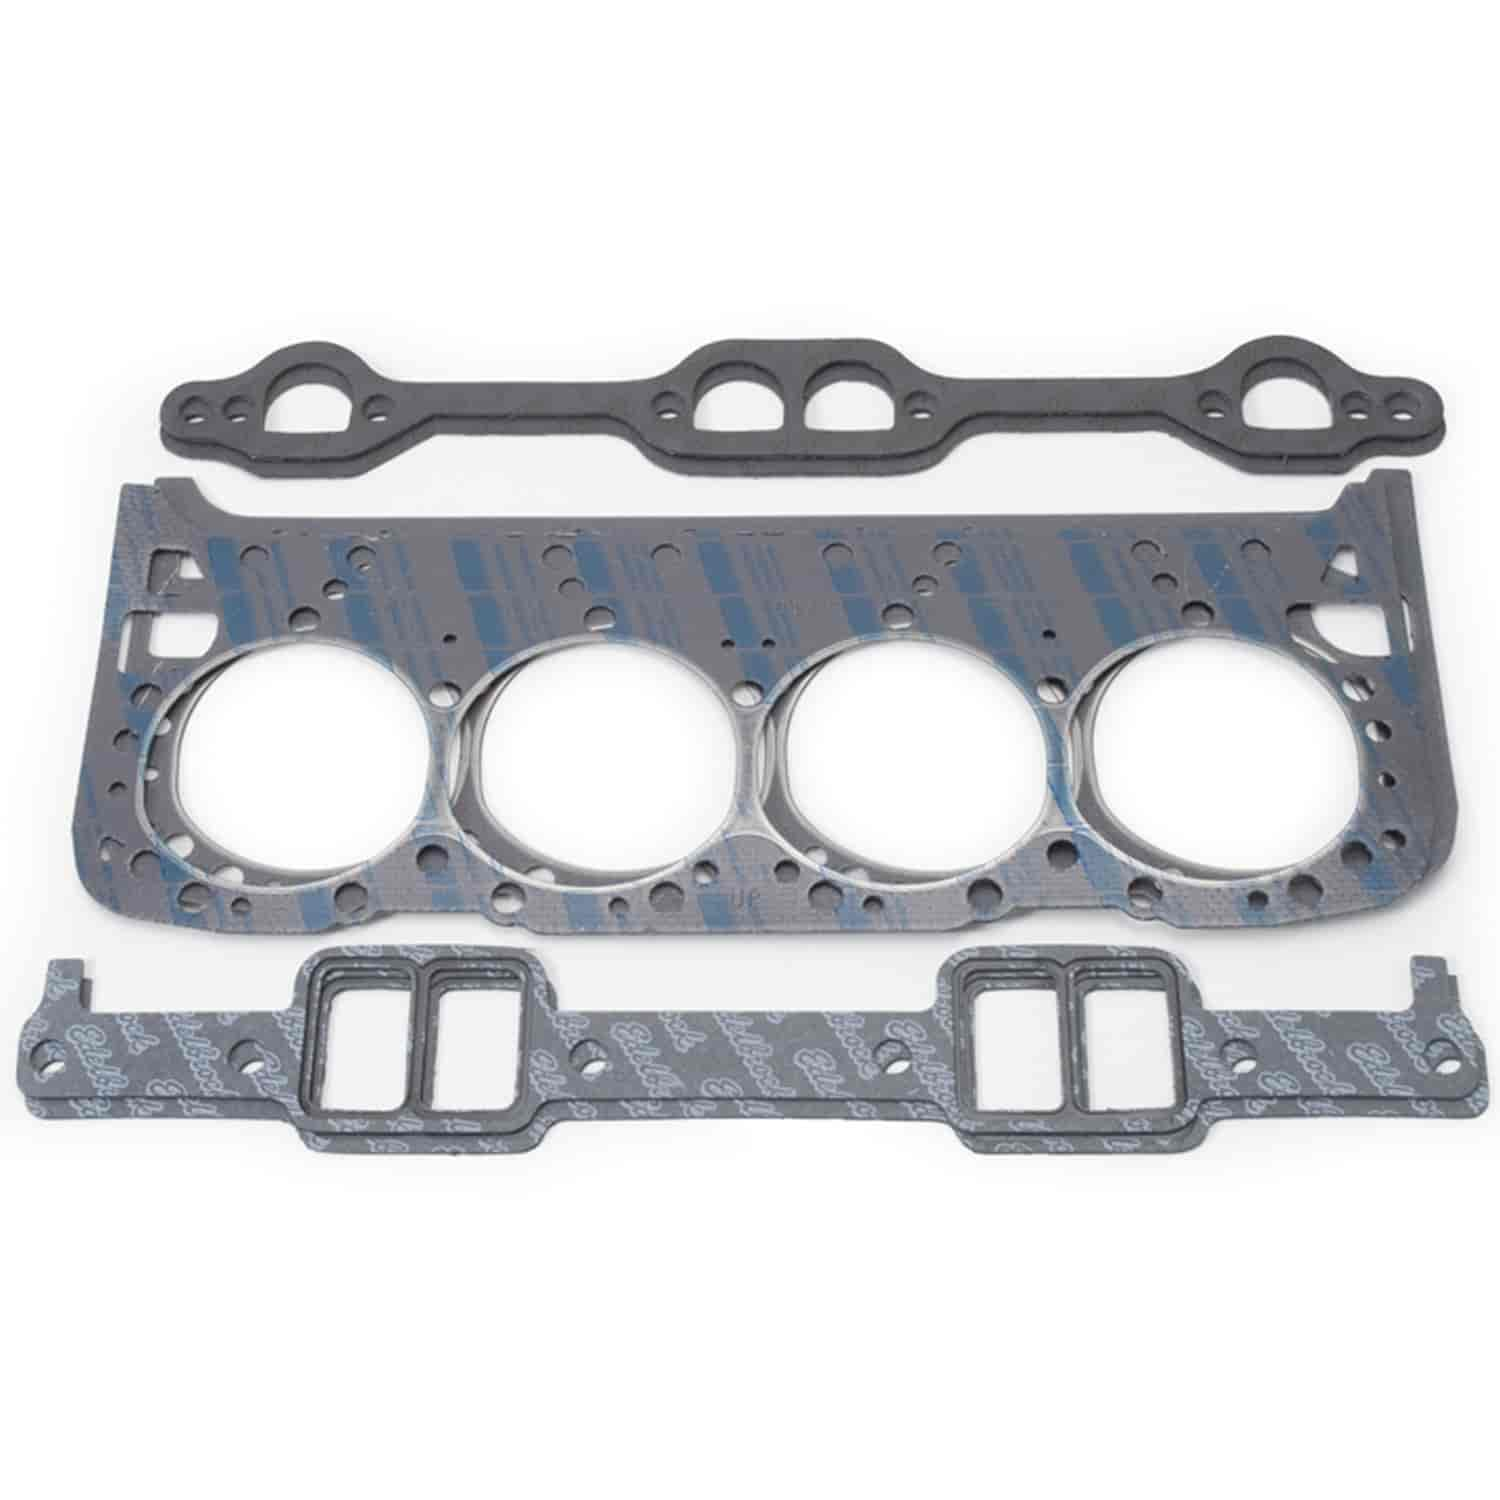 Edelbrock 61905 Performer Lt1 Cylinder Heads Chevy 5 7l: Edelbrock 7380 Head Gaskets Set